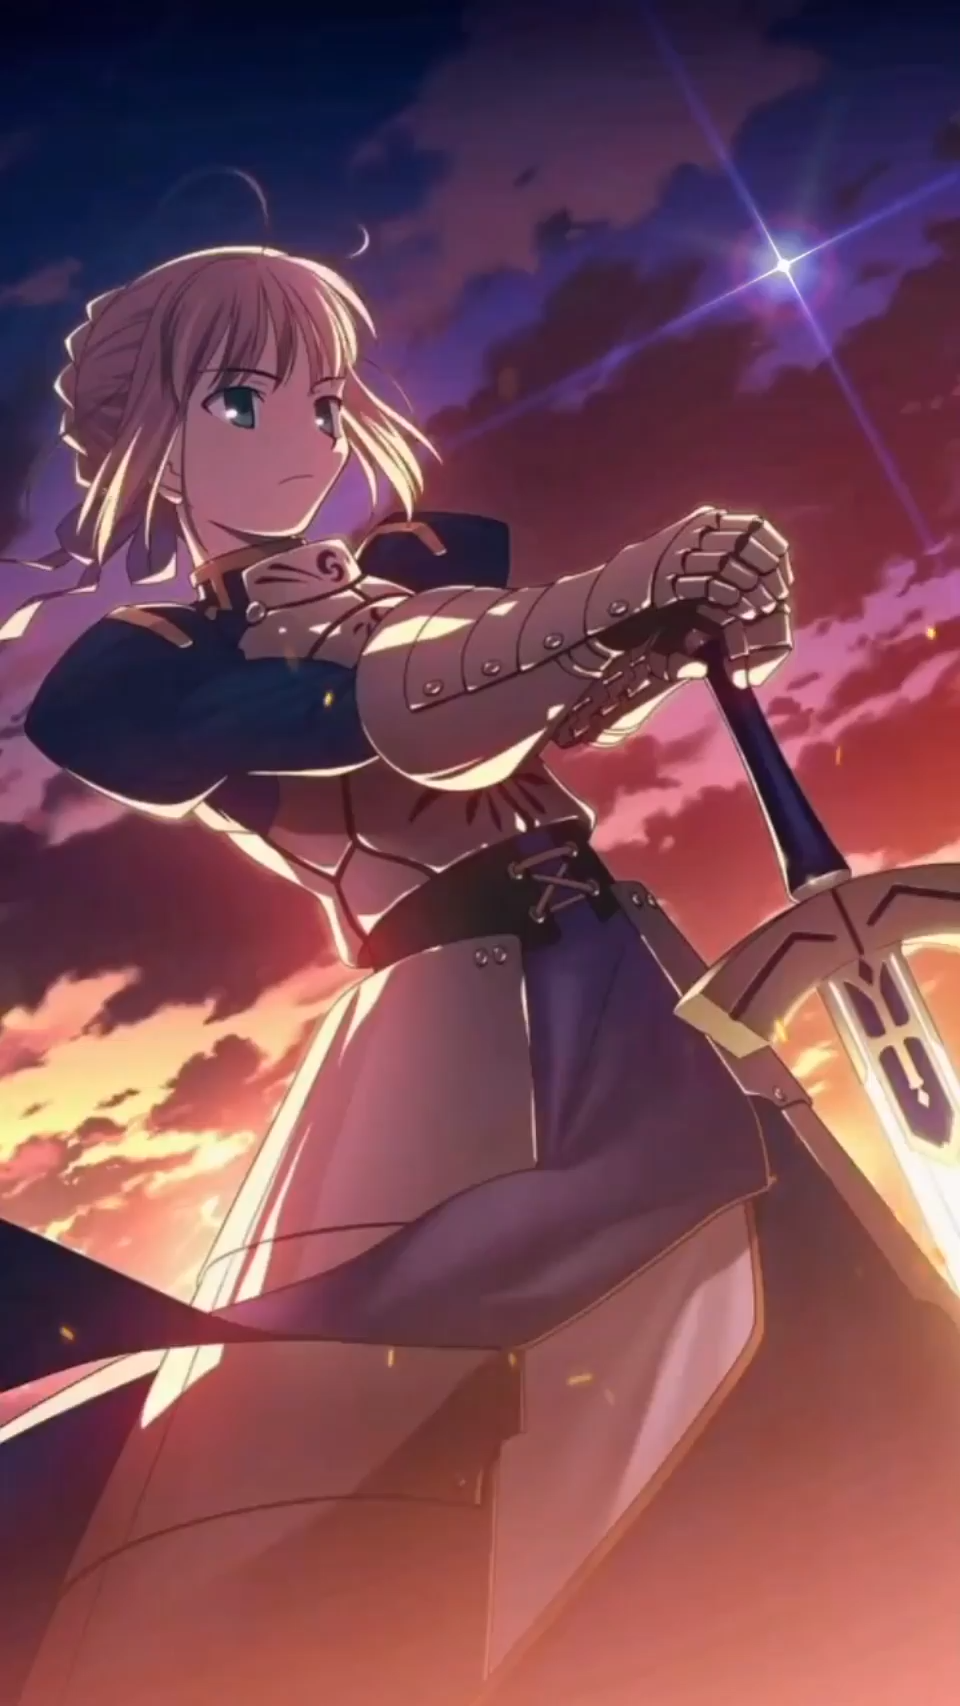 Saber Live Wallpaper Anime Live Wallpaper Saber Fate Stay Night Saber The Effective Pictures We Offer You About W In 2020 Fate Stay Night Anime Wallpaper Anime